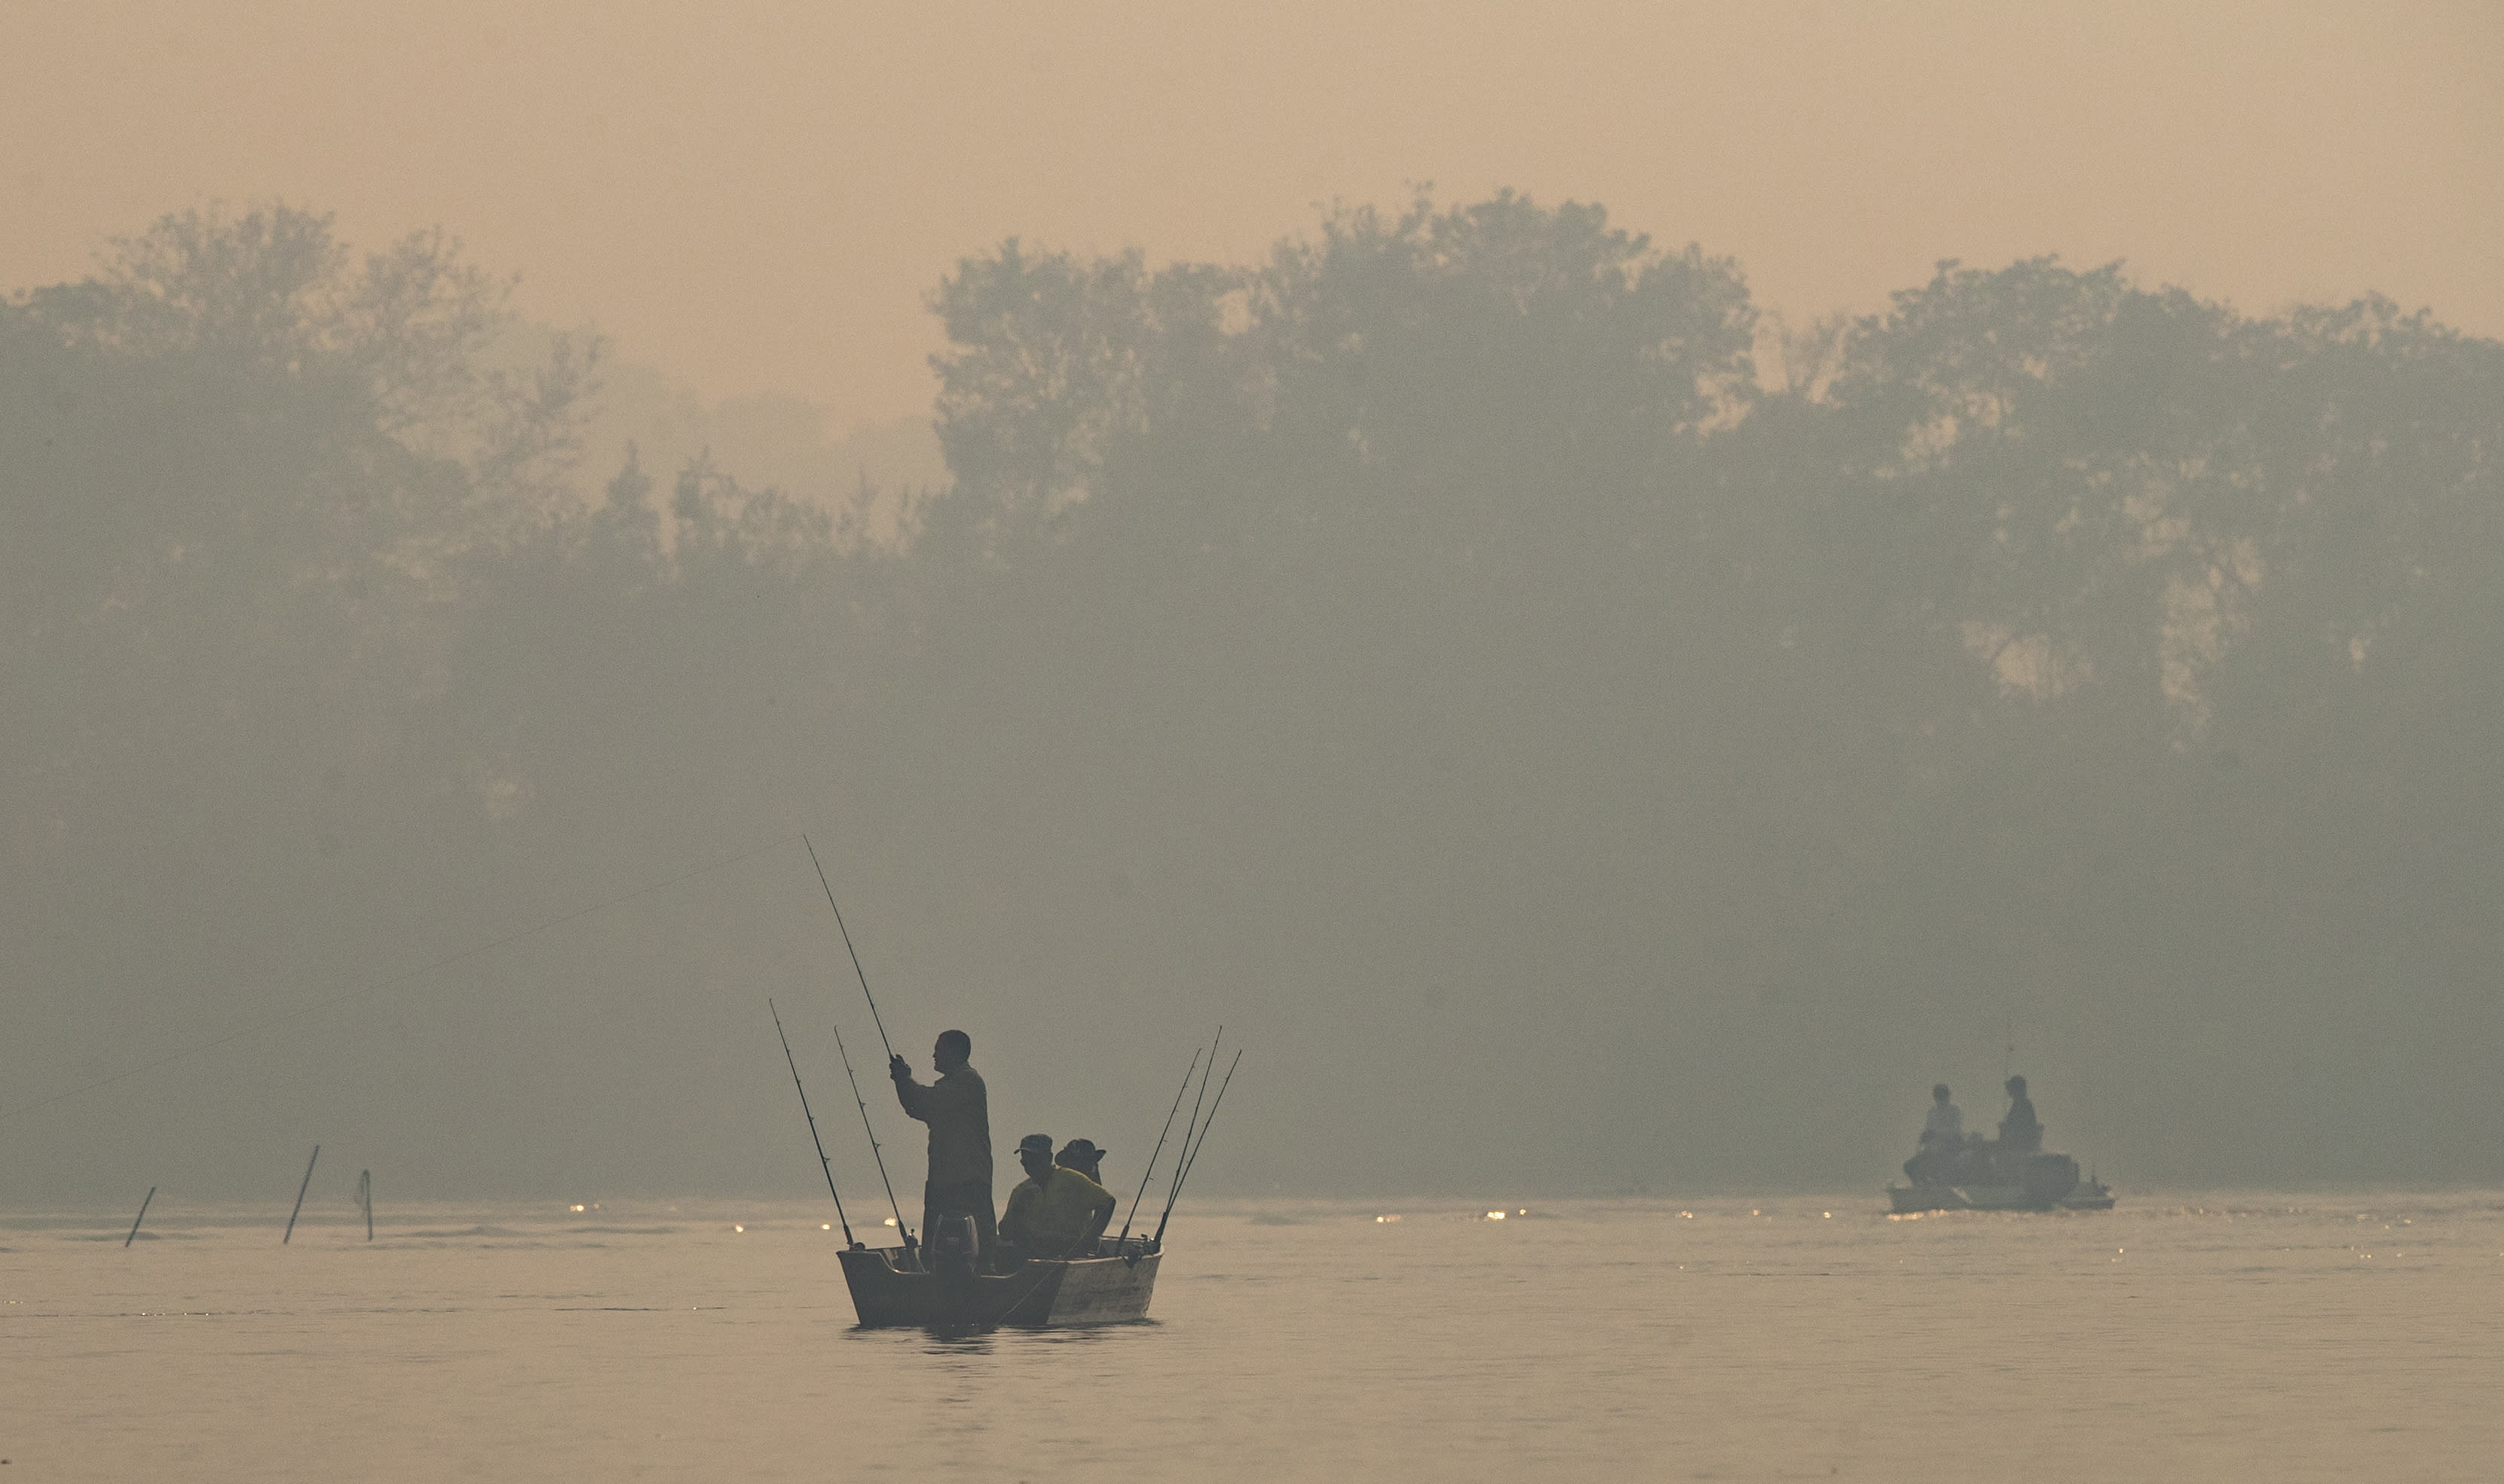 Men fish in the in the Cuiaba River in a dense smoke caused by fires, at the Encontro das Aguas state park in the Pantanal wetlands near Pocone, Mato Grosso state, Brazil, Sunday, Sept. 13, 2020. This year the Pantanal is exceptionally dry and burning at a record rate. The fires have been so intense that its smoke on Sept. 18 reached Sao Paulo, 900 miles away. (AP Photo/Andre Penner)